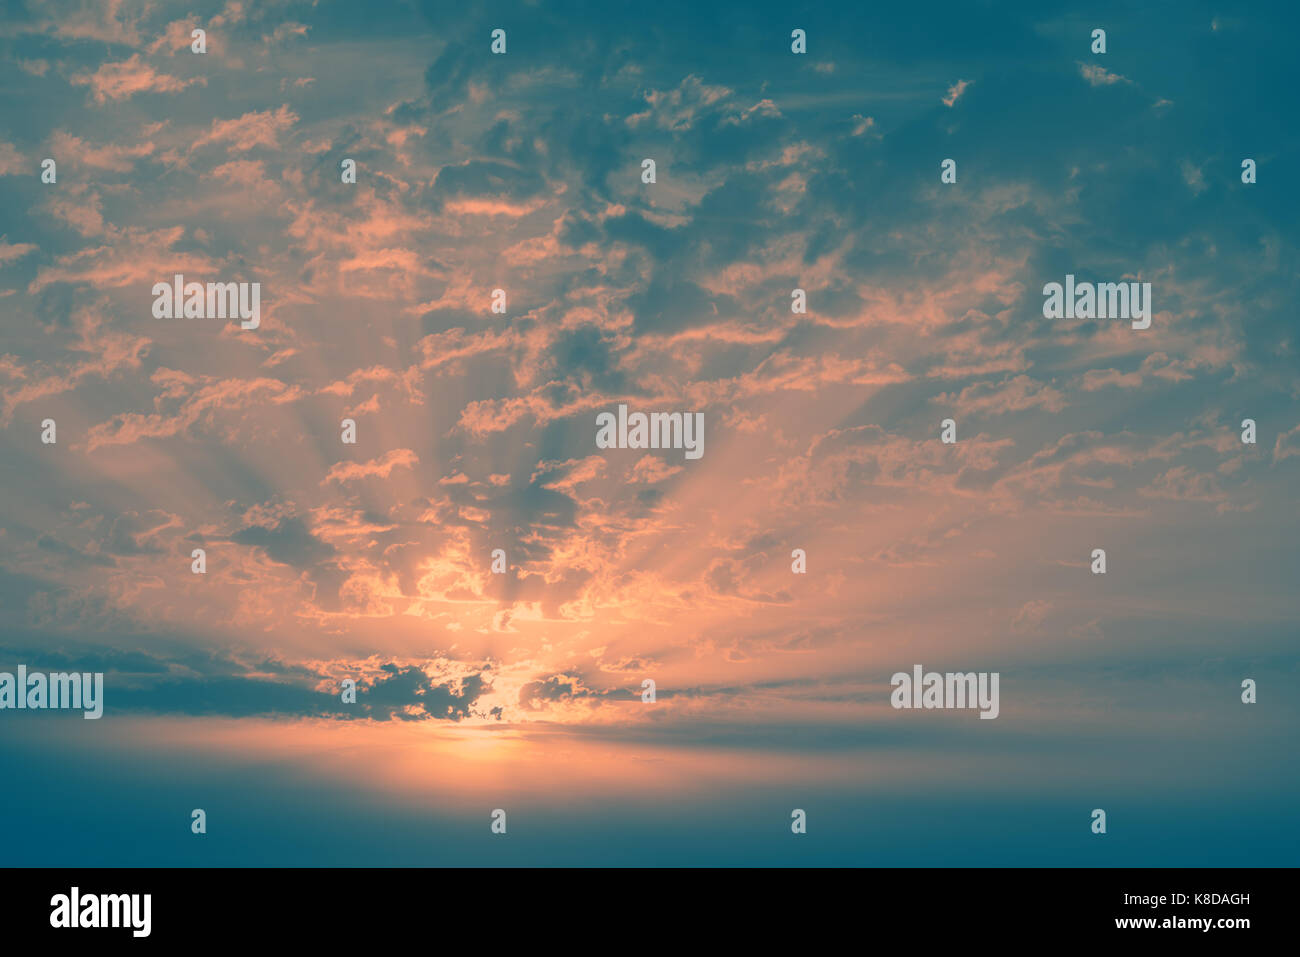 Colourful cloudy sky at sunset. Vintage style background image. - Stock Image